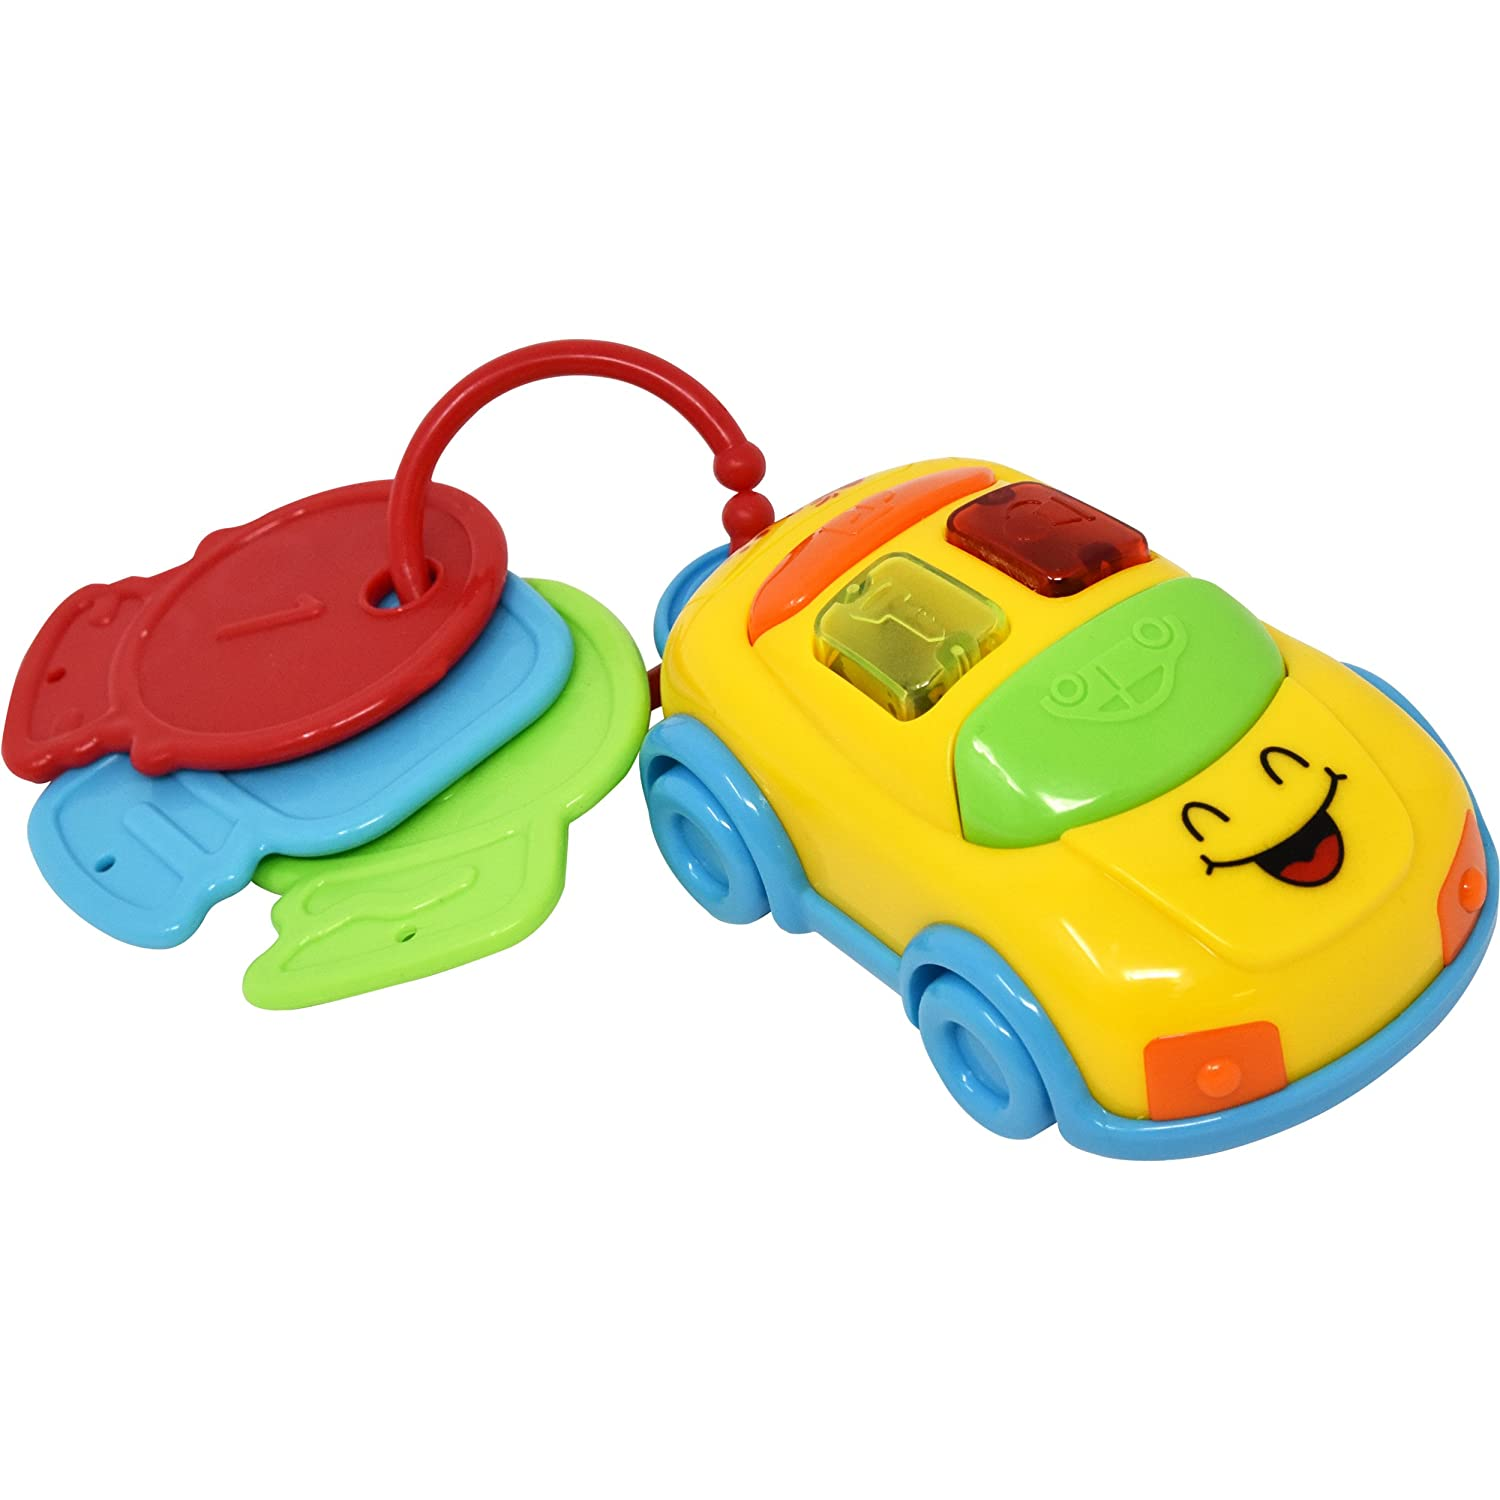 Music and Lights Baby Car Toy with Car Keys, Flashing Lights